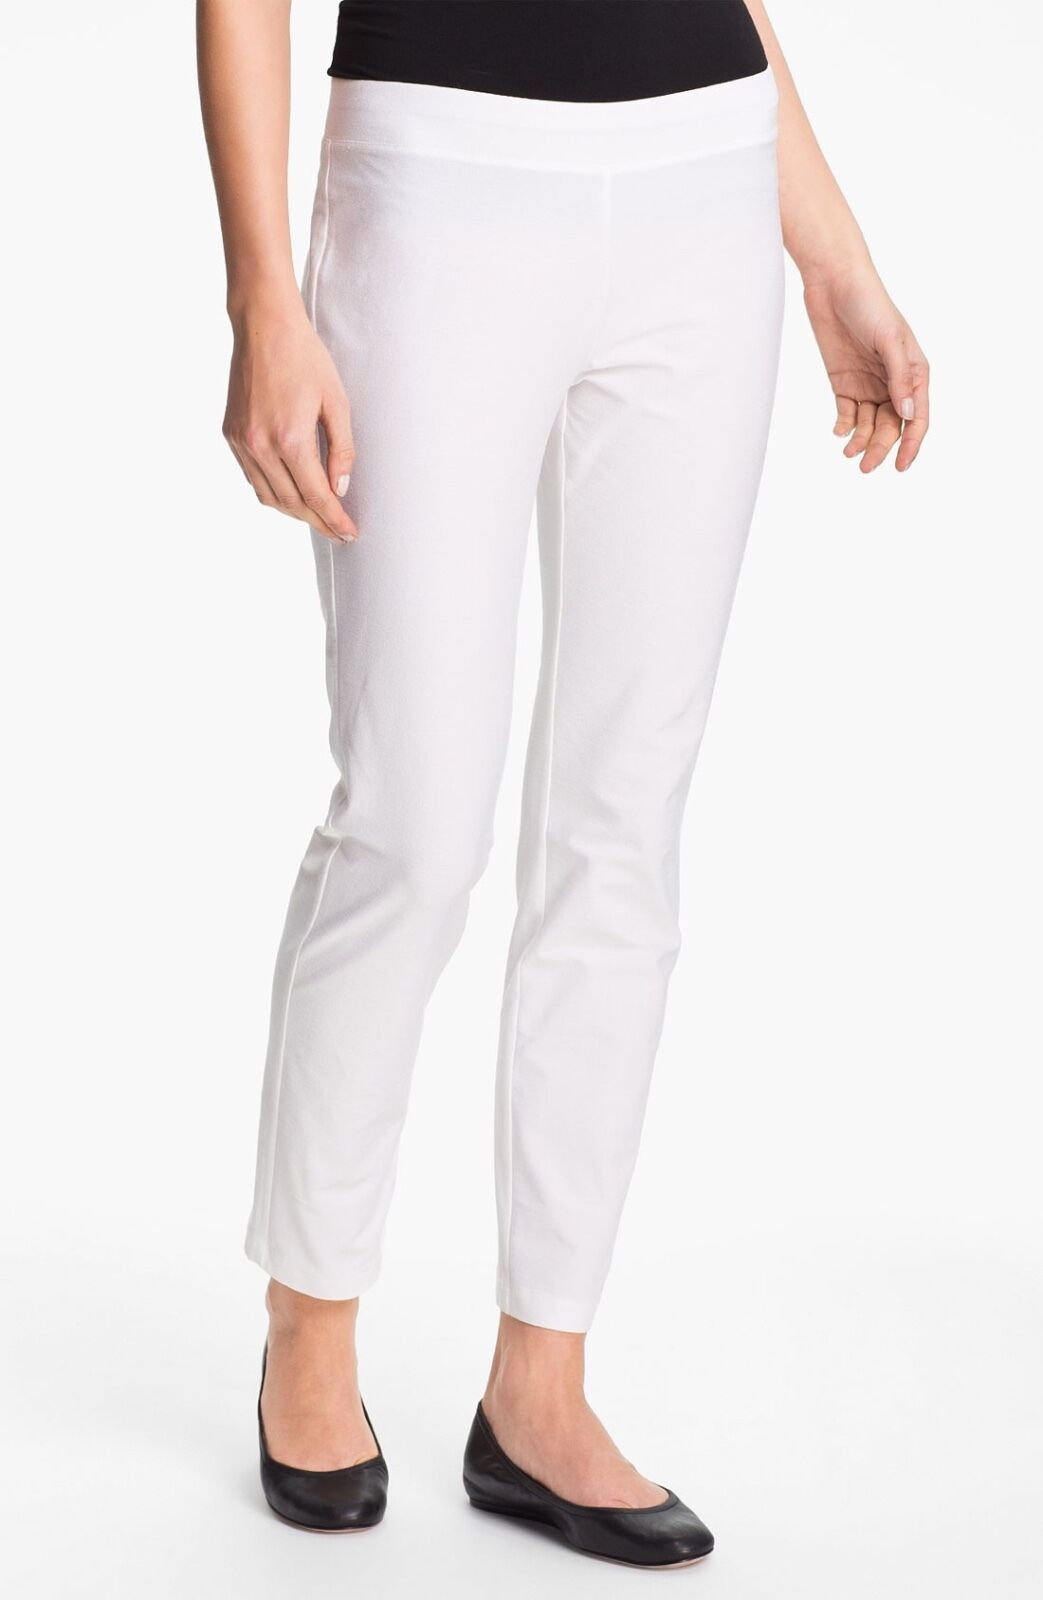 NEW Eileen Fisher EETK Slim Ankle Pant White Size PP Petite Small S Large L